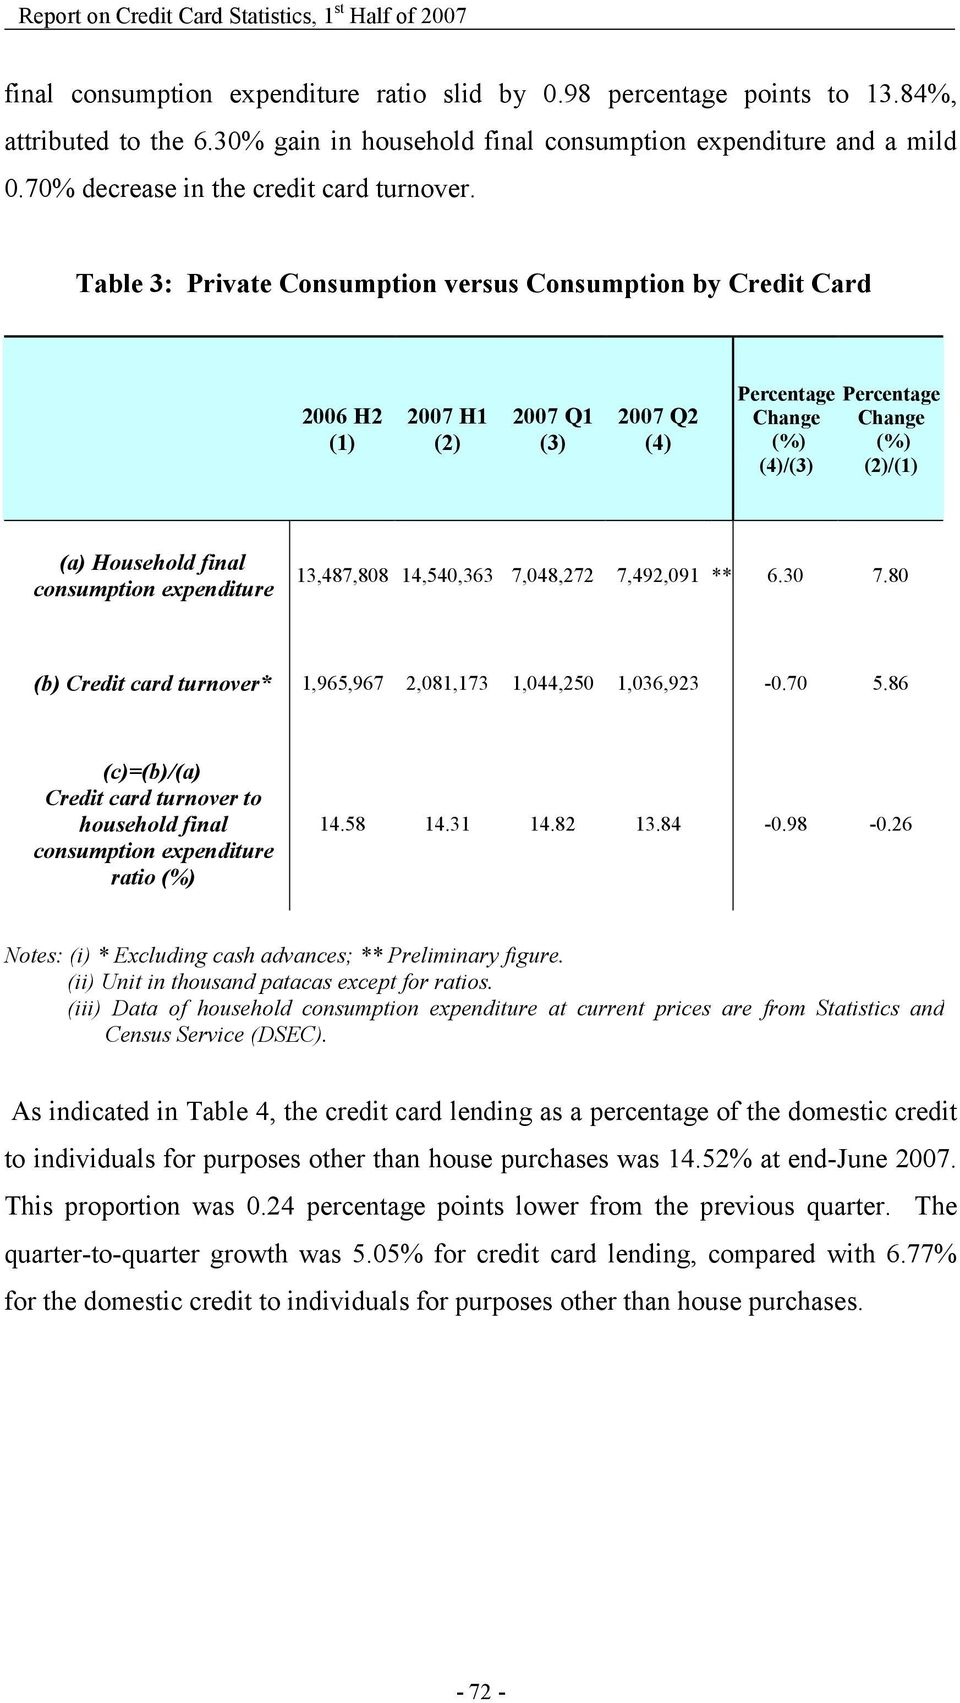 Table 3: Private Consumption versus Consumption by Credit Card 2006 H2 (1) 2007 H1 (2) 2007 Q1 (3) 2007 Q2 (4) (4)/(3) (2)/(1) (a) Household final consumption expenditure 13,487,808 14,540,363